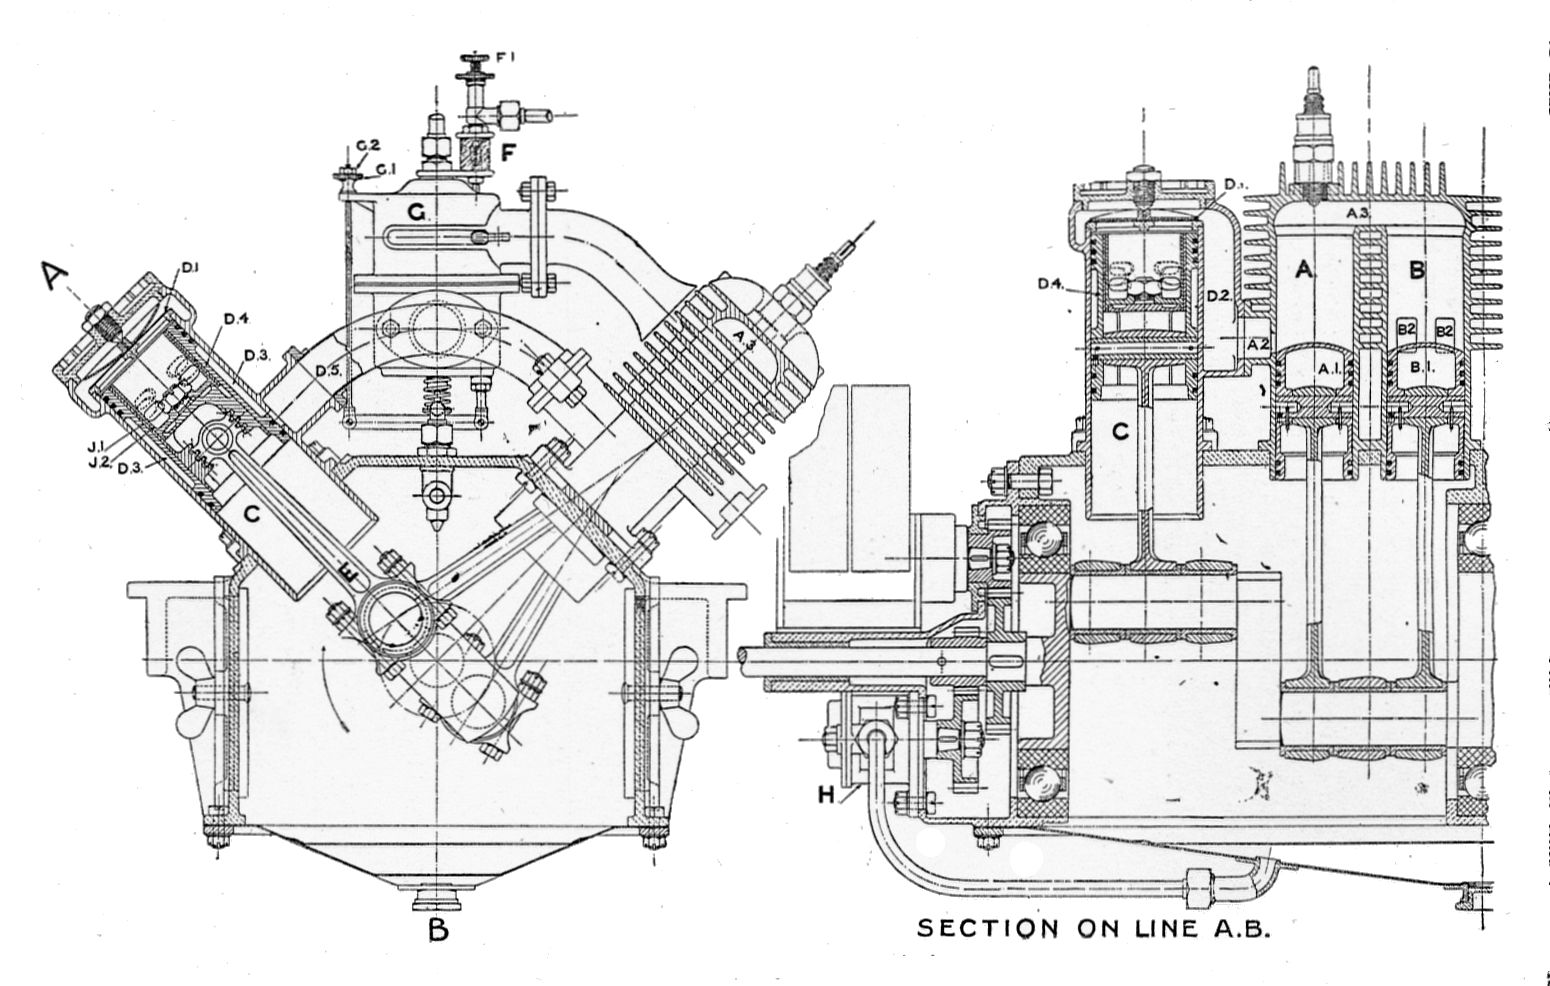 File:Lamplough%27s_two Stroke_engine,_section_(Rankin_Kennedy,_Modern_Engines,_Vol_V) on 4 Stroke Engine Cycle